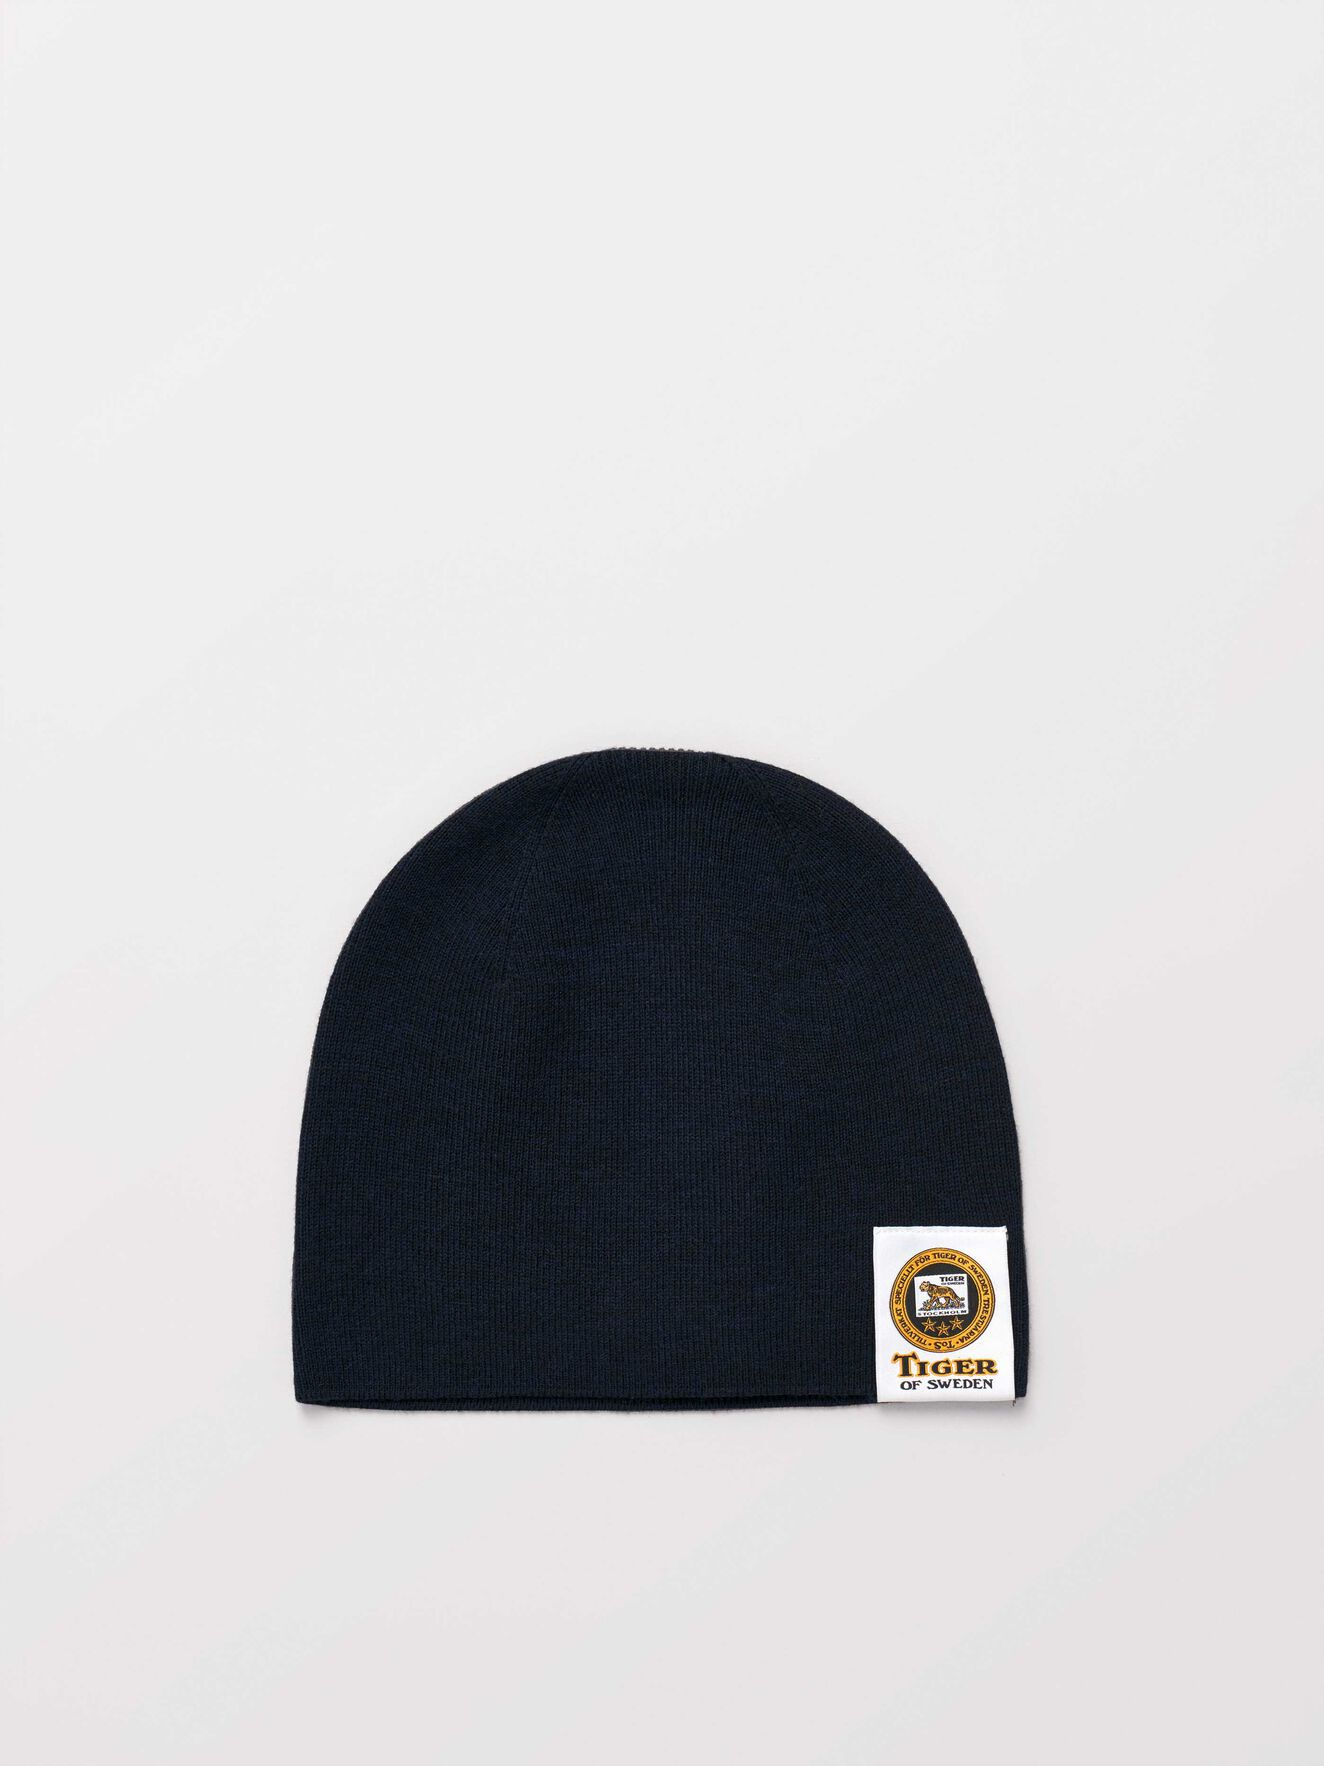 Sannder Beanie in Light Ink from Tiger of Sweden